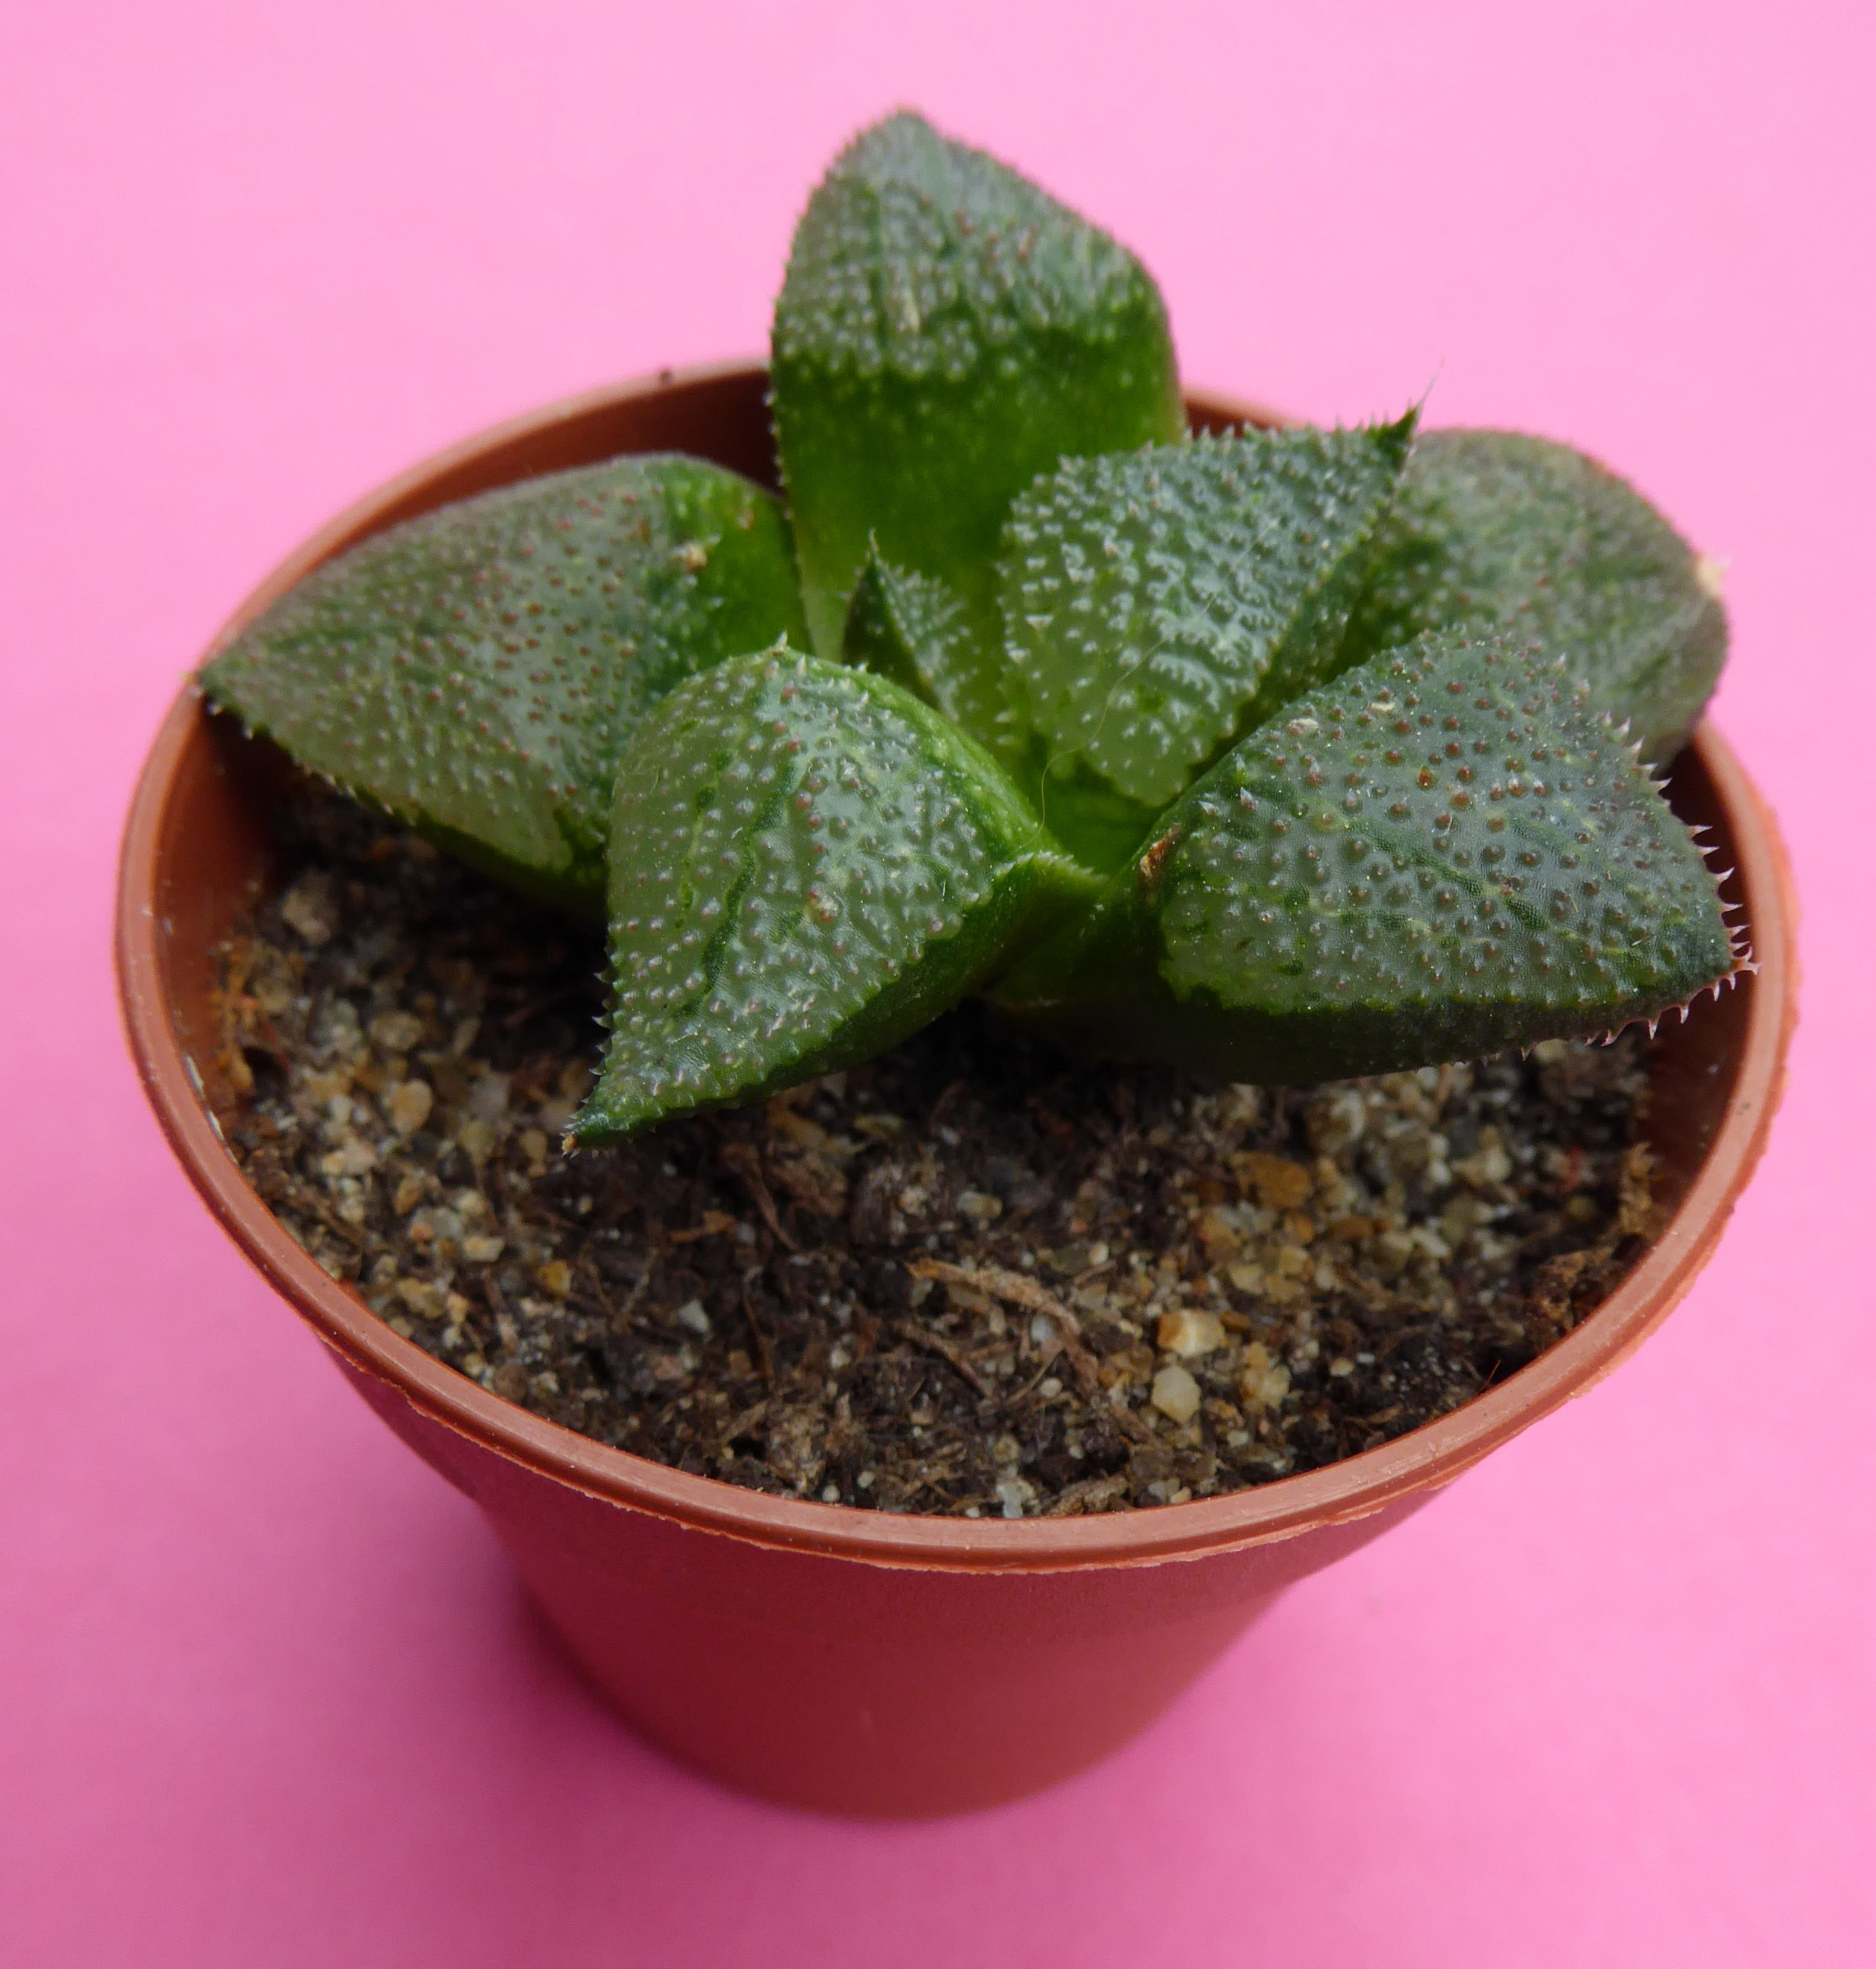 Haworthia mirabilis var. badia x emelyae (picta) in 5,5 cm pot 4 months after the purchase from Succulent Tissue Culture in the Netherlands